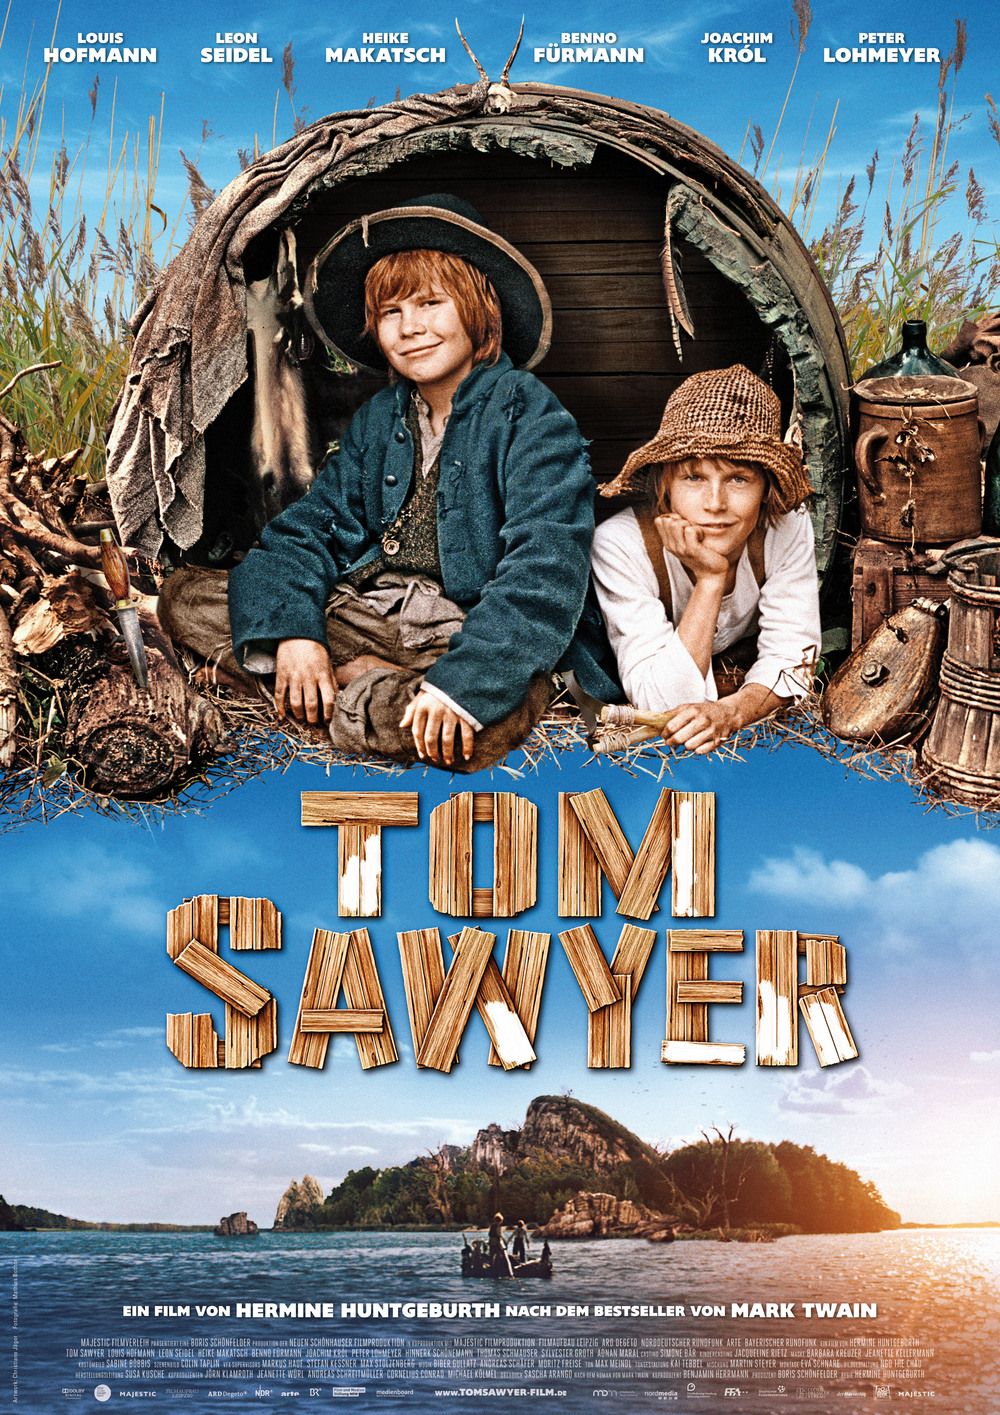 2011_Tom_Sawyer_Neue_Schoenhauser_Filmproduktion.jpg